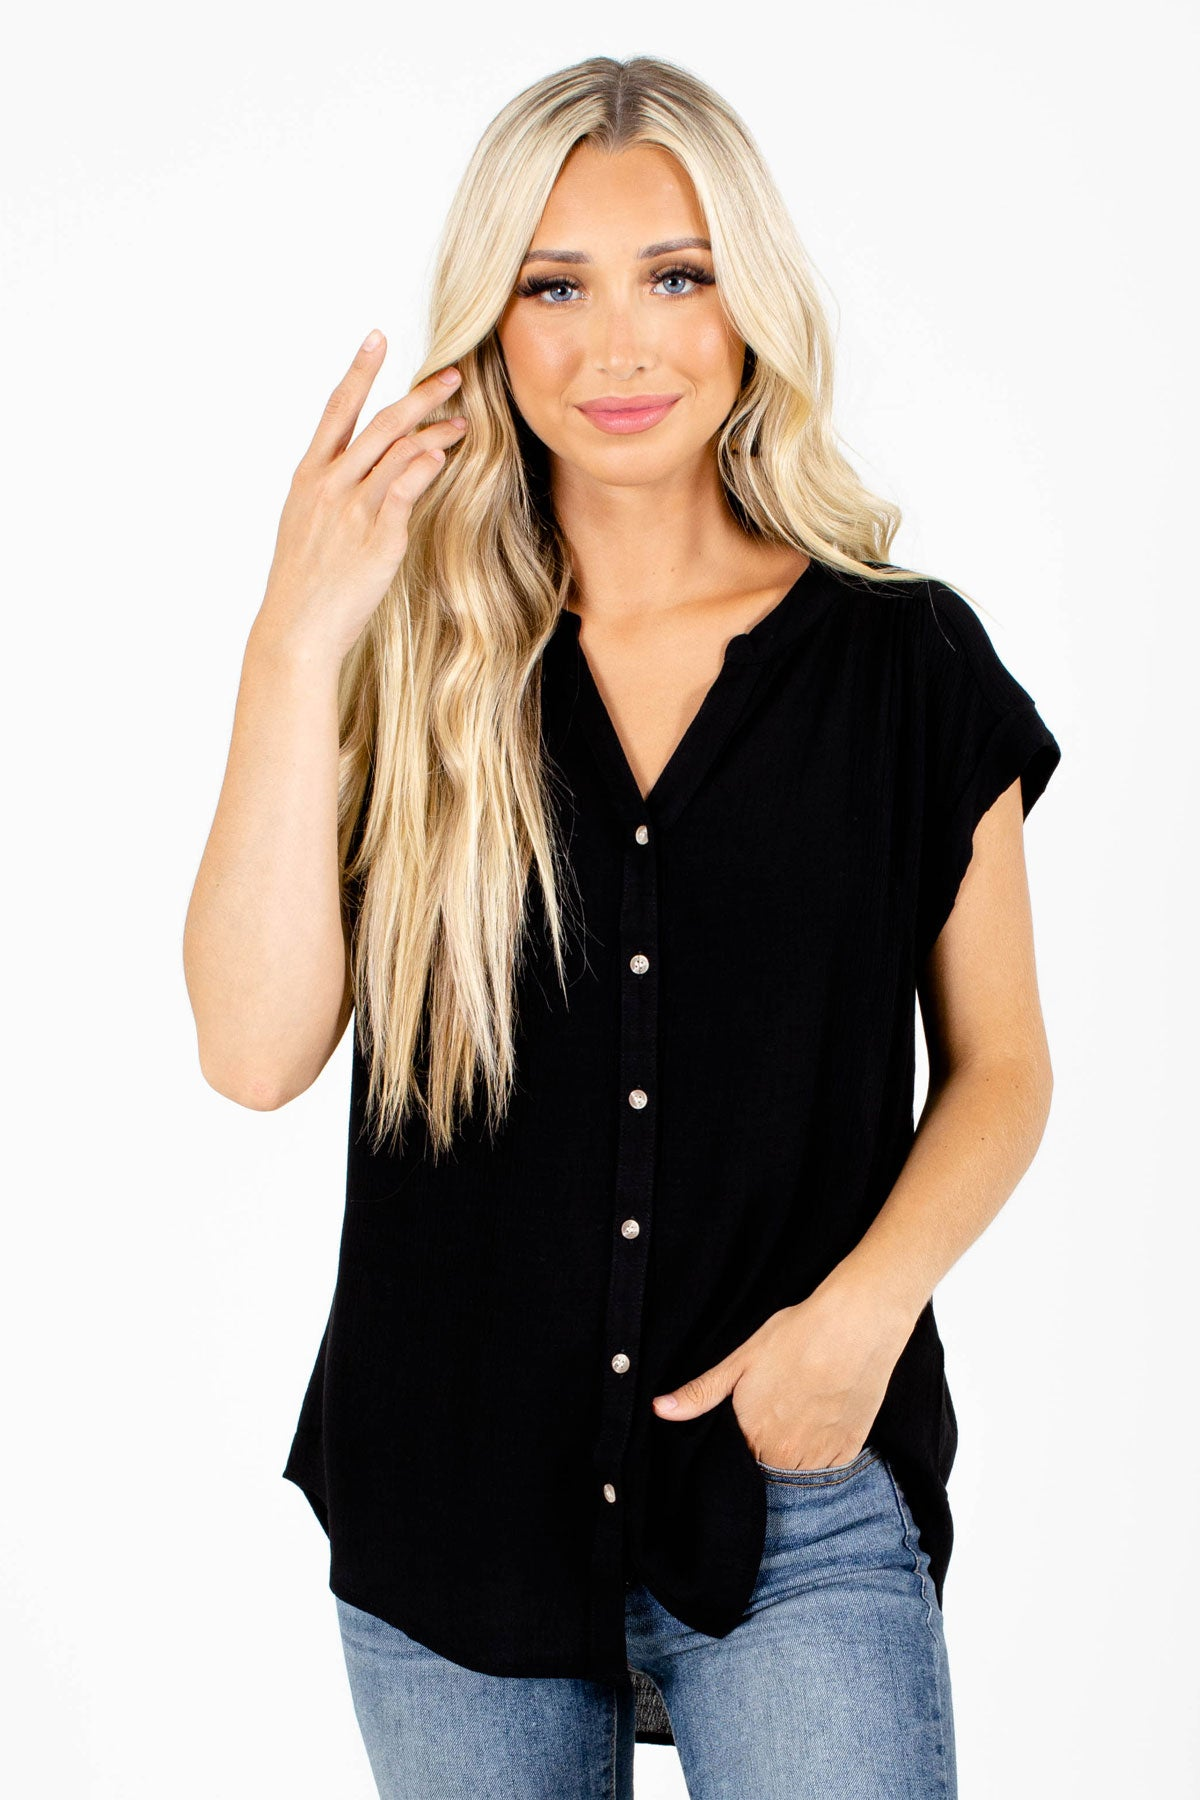 Black Pleated Accented Boutique Shirts for Women